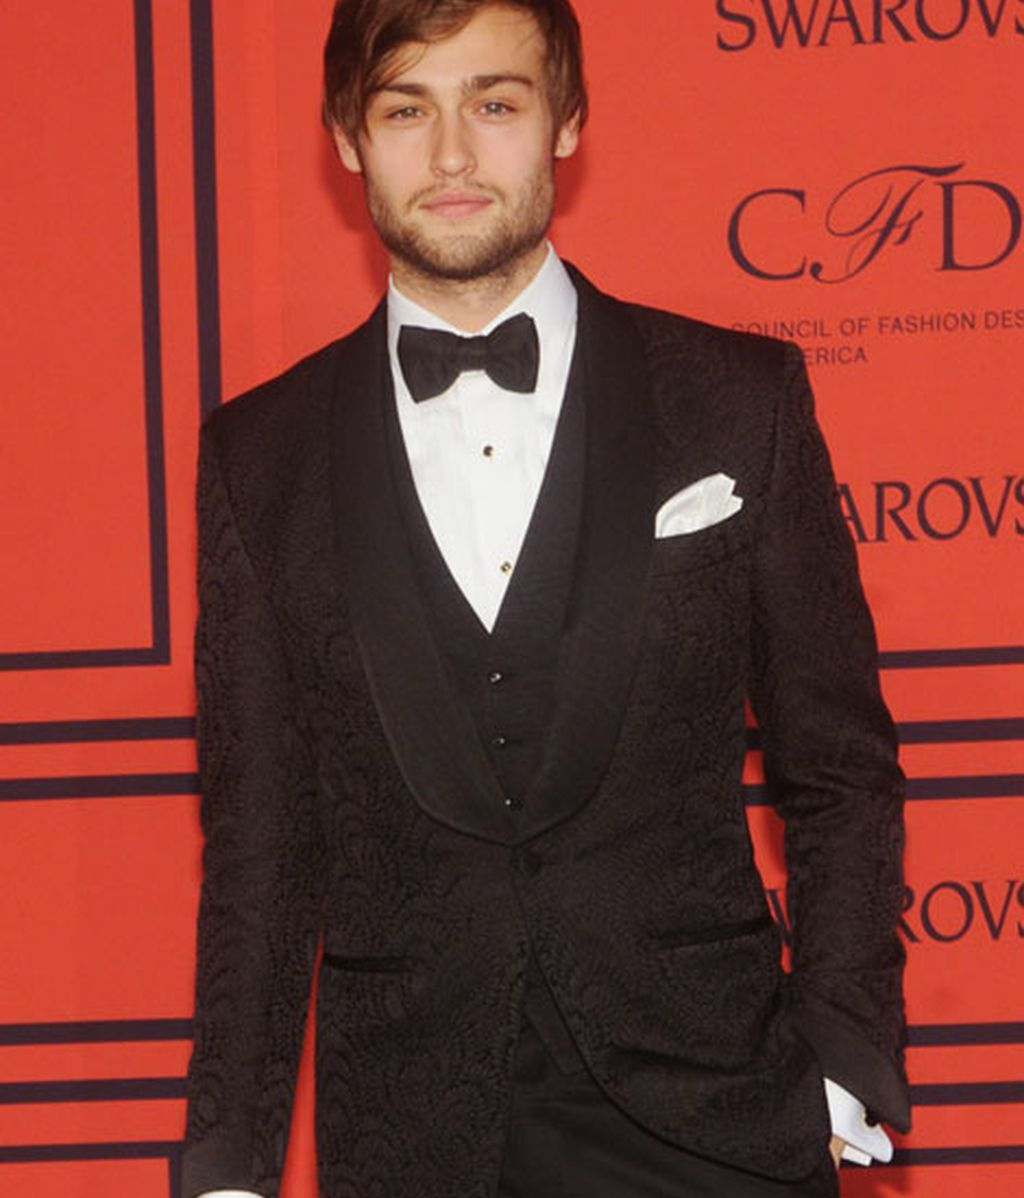 El actor Douglas Booth